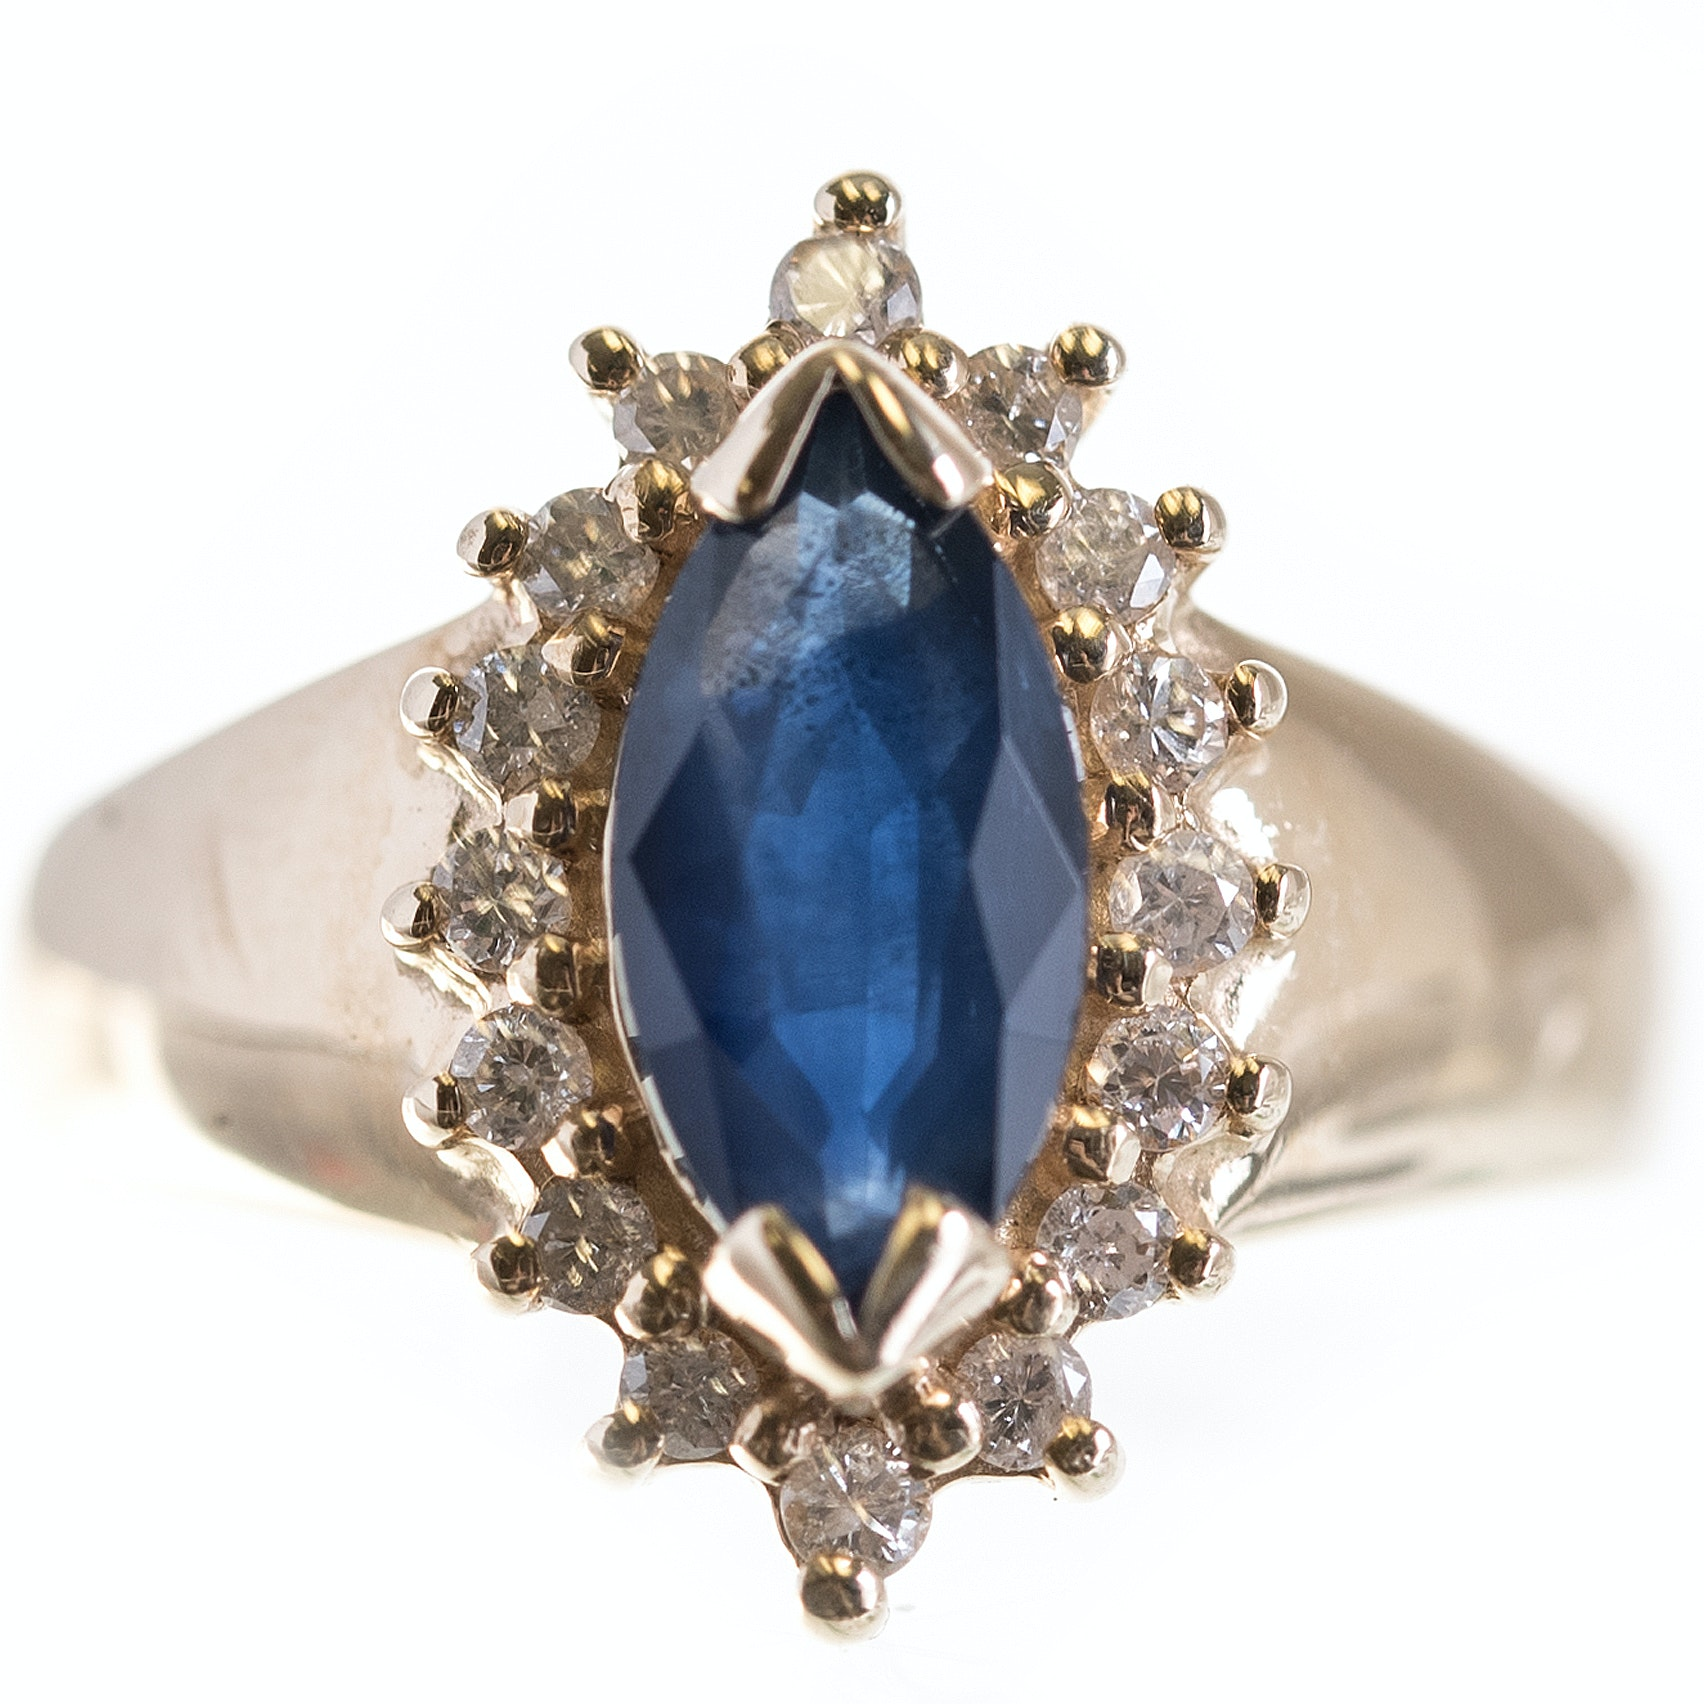 EFFY 14K Yellow Gold Sapphire and Diamond Ring